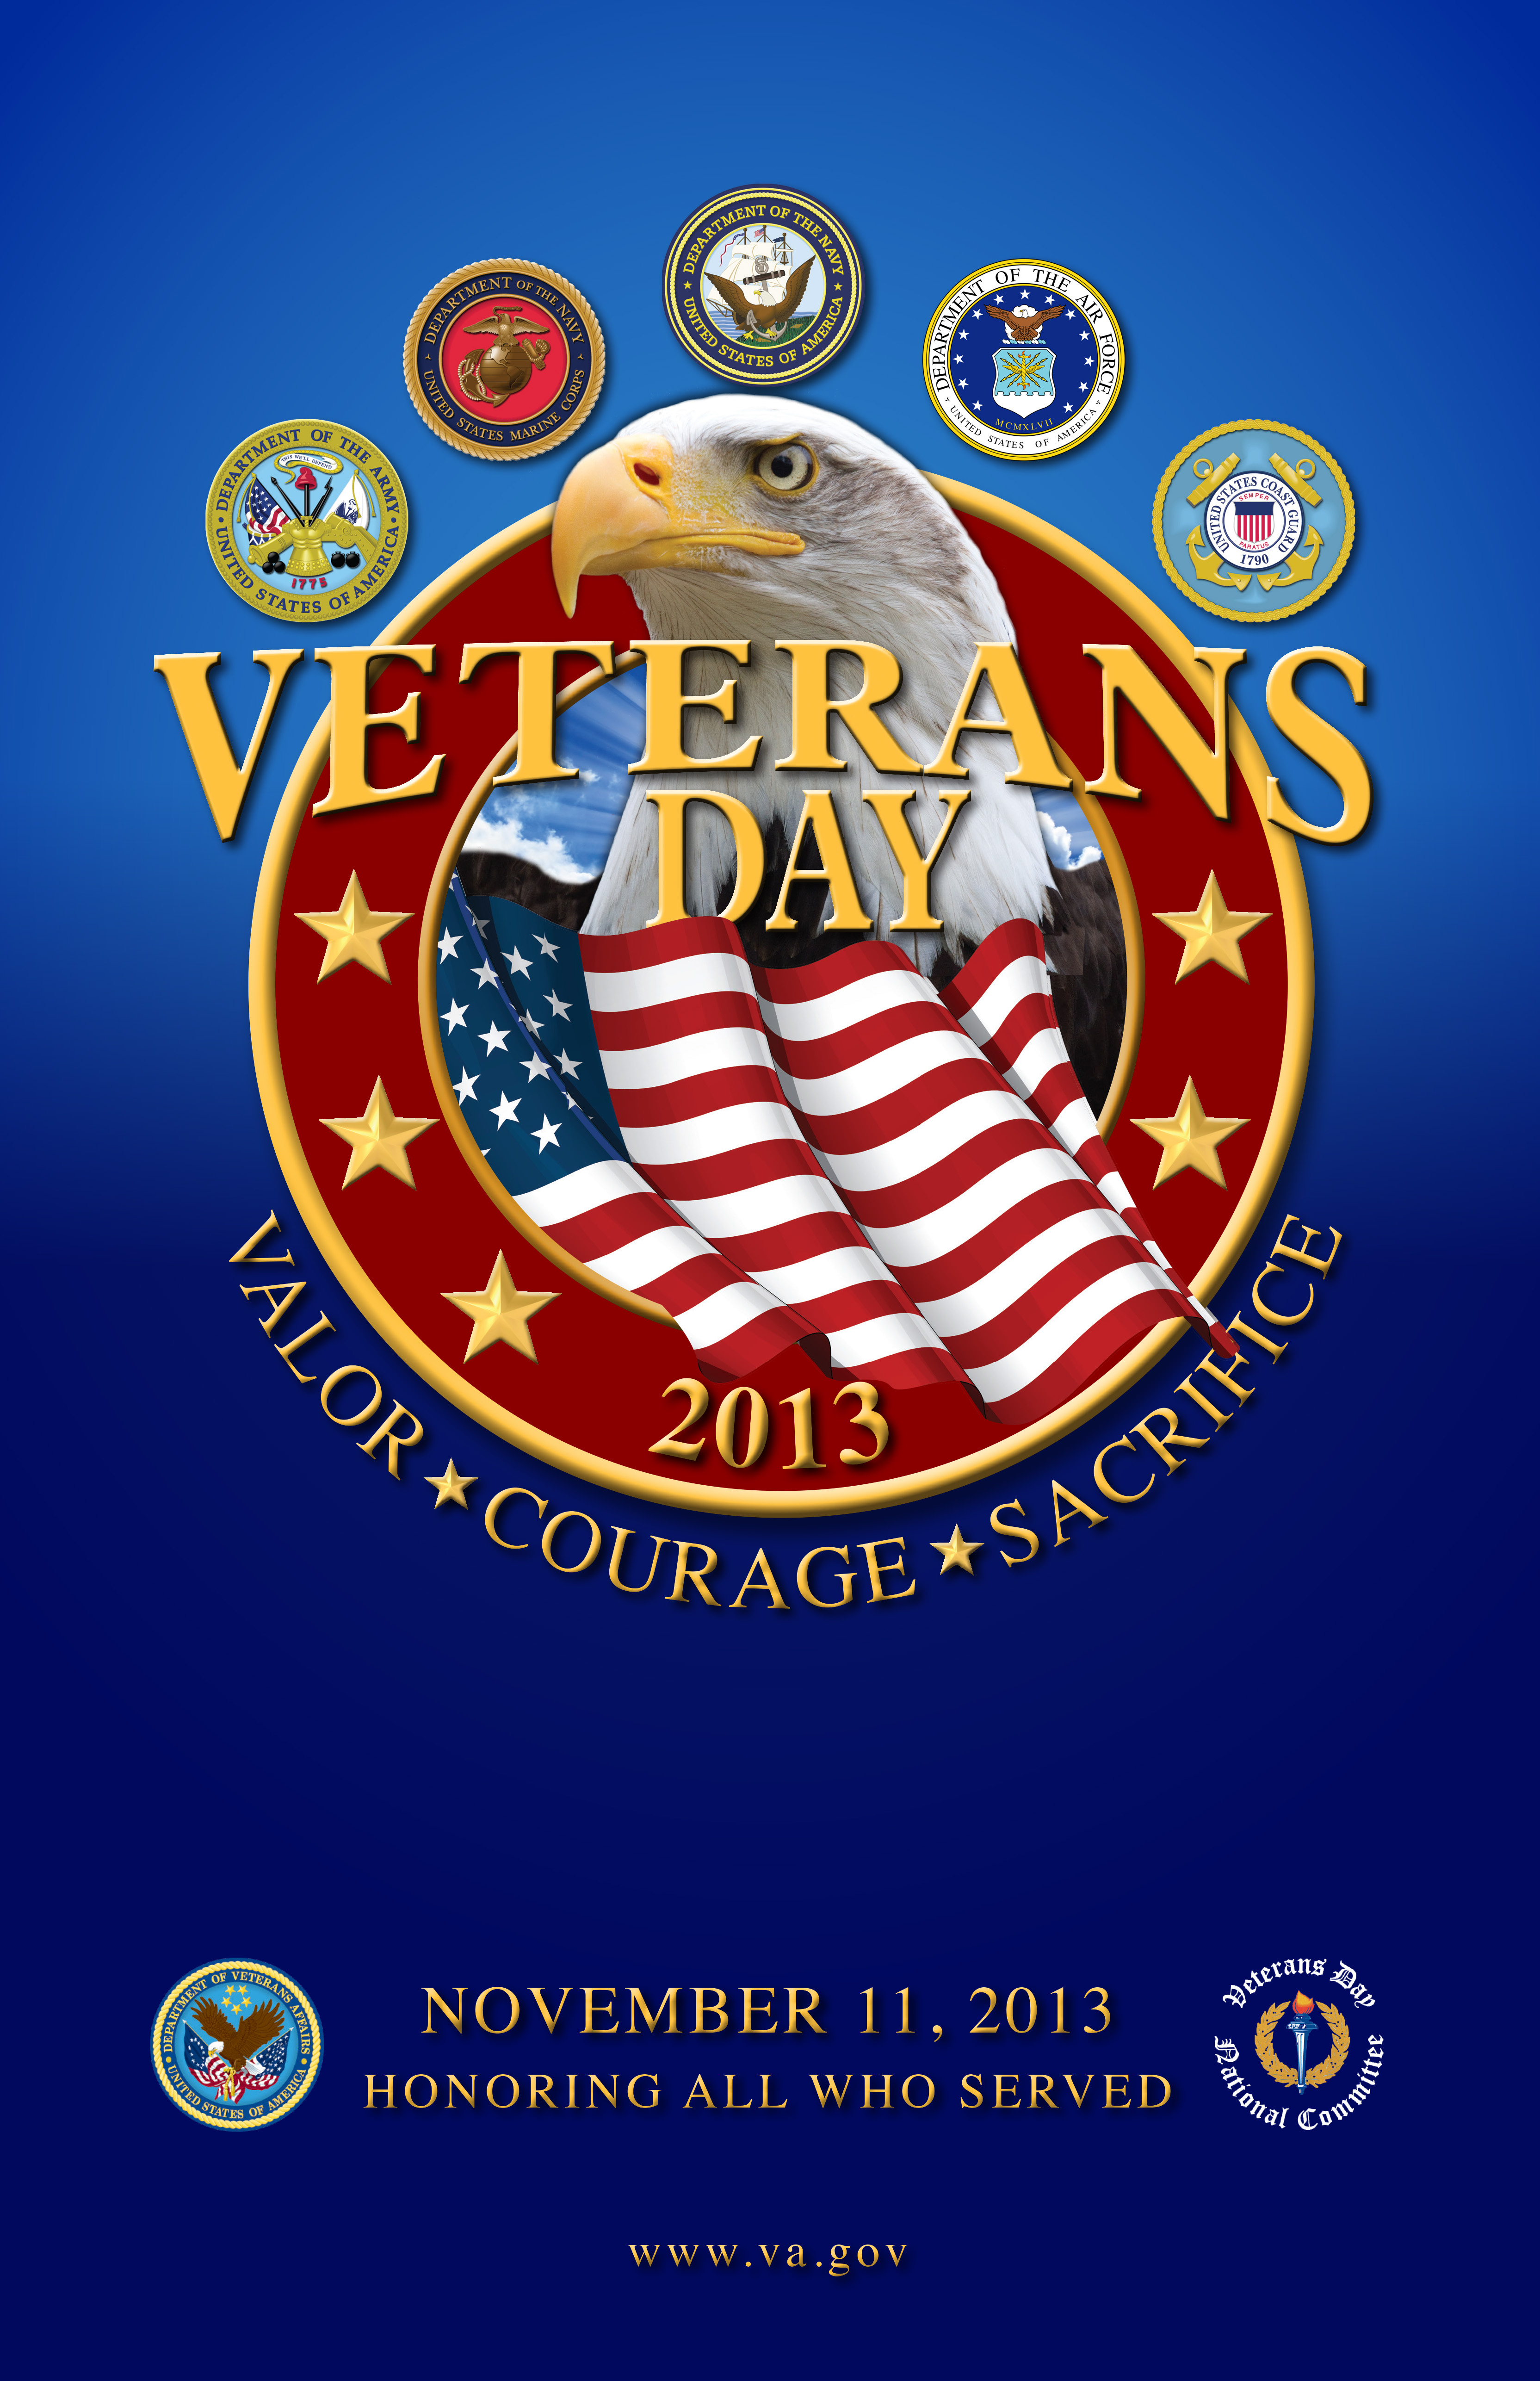 Poster for Veterans Day 2013, from the Veterans Administration